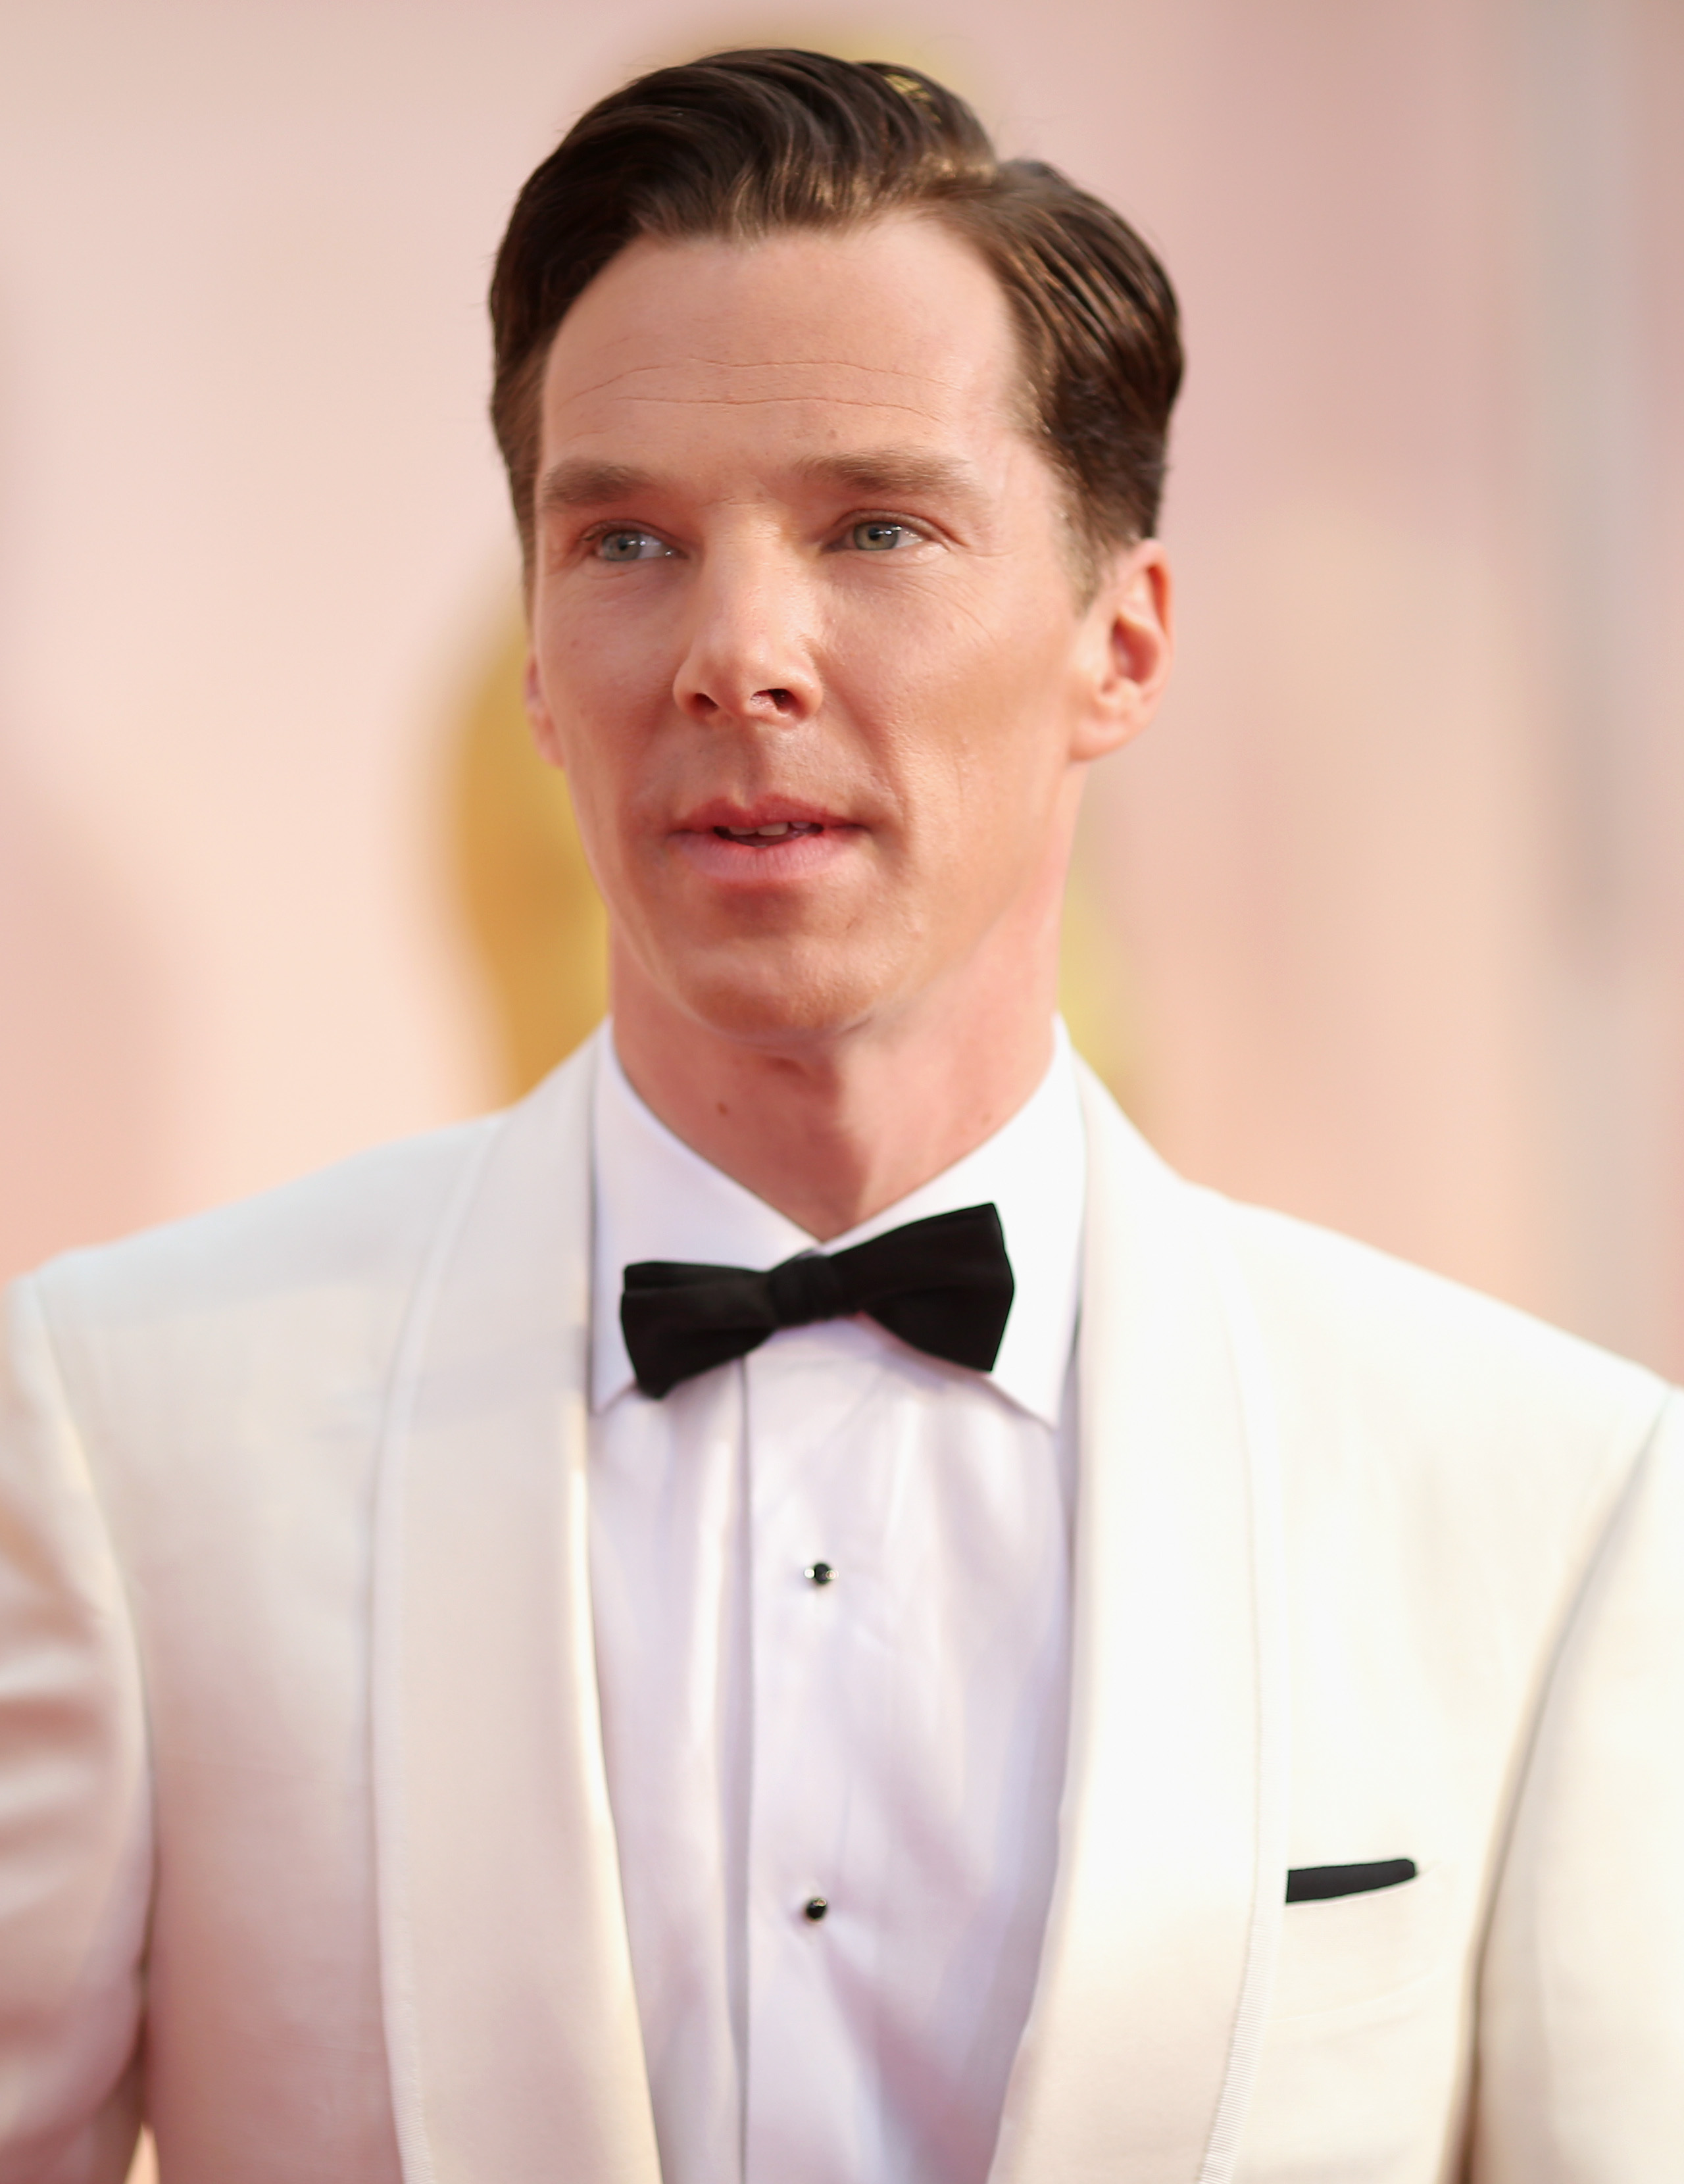 Actor Benedict Cumberbatch attends the 87th Annual Academy Awards in Hollywood, Calif. on Feb. 22, 2015.